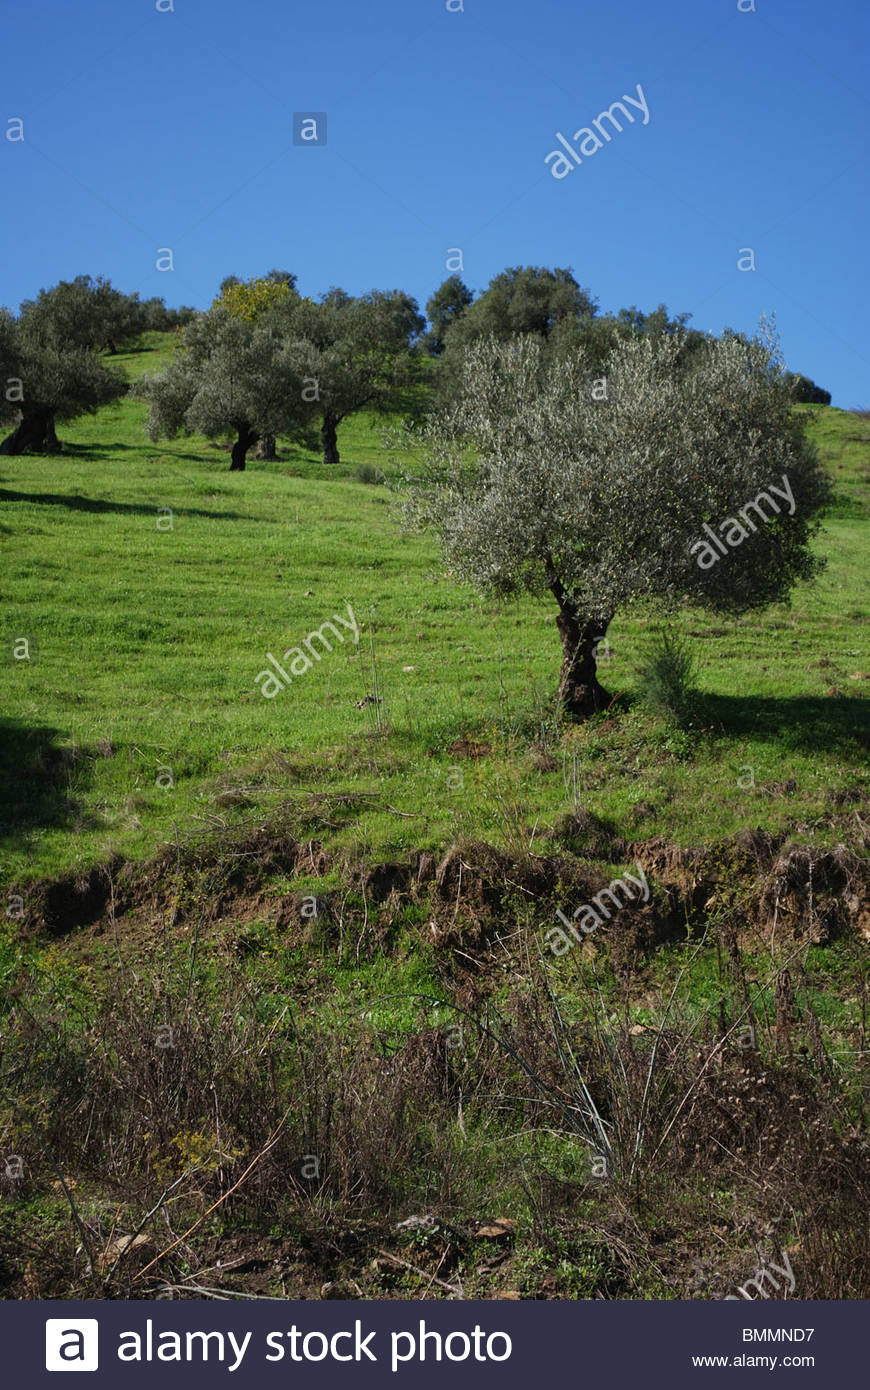 Olive Tree Field Andalucia Spain Stock Photos Olive Tree Field